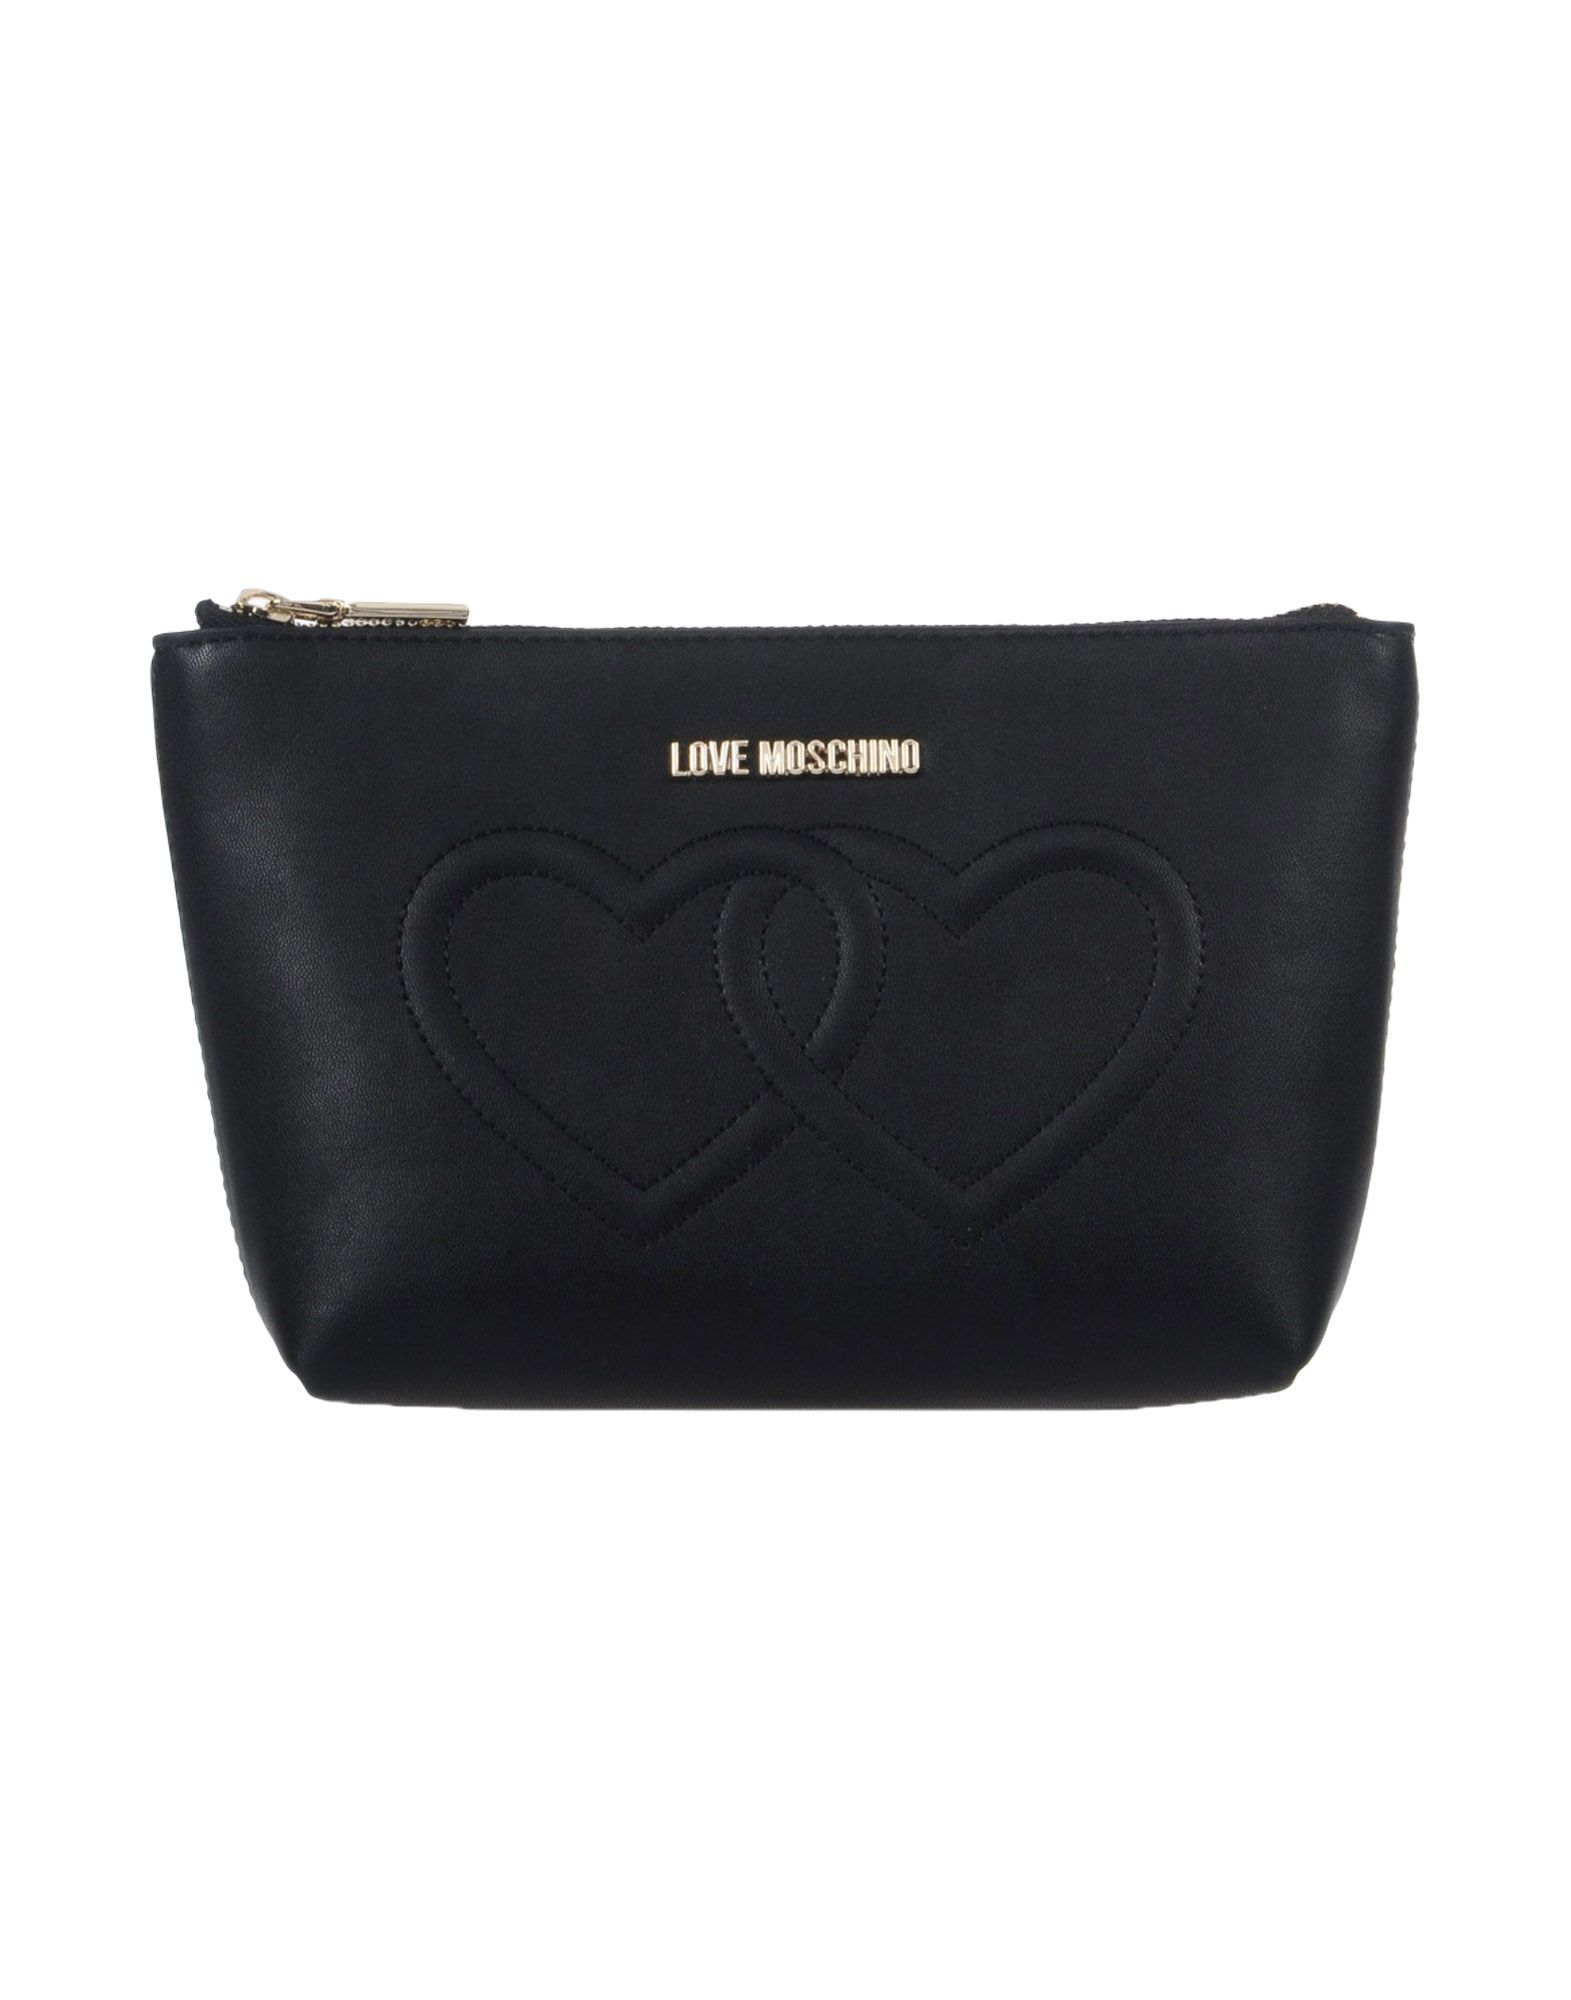 LOVE MOSCHINO Beauty case